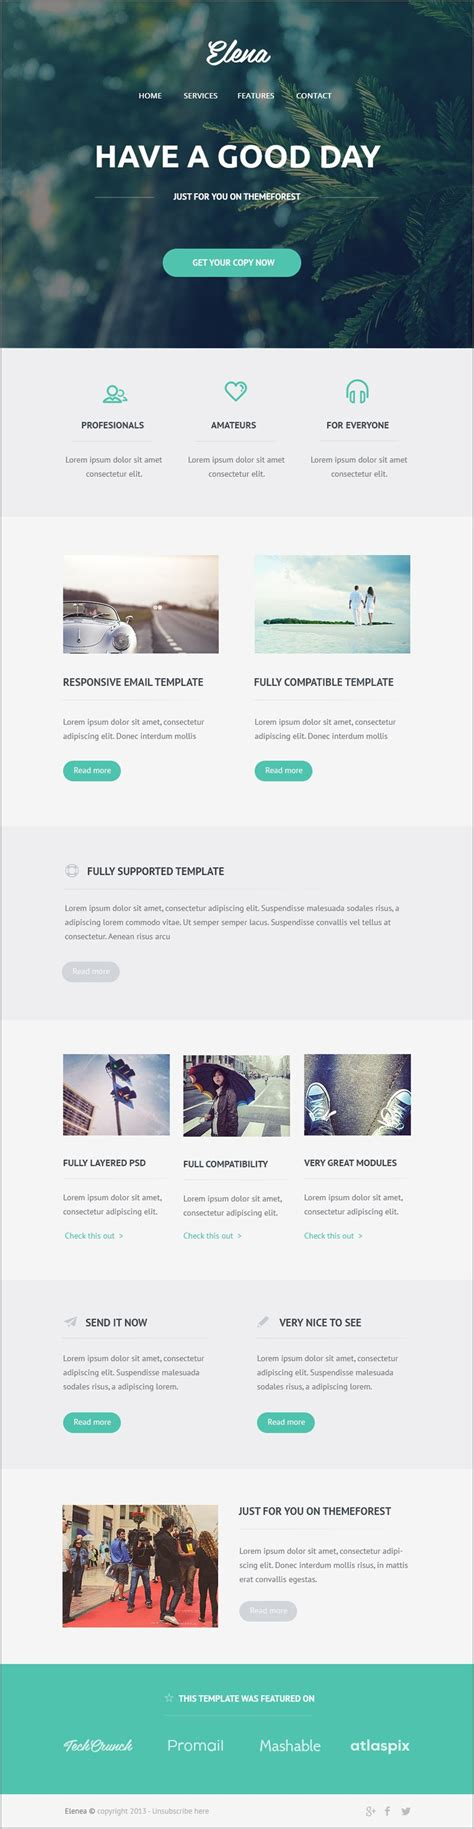 Psd To Email Template free email newsletter templates psd 187 css author